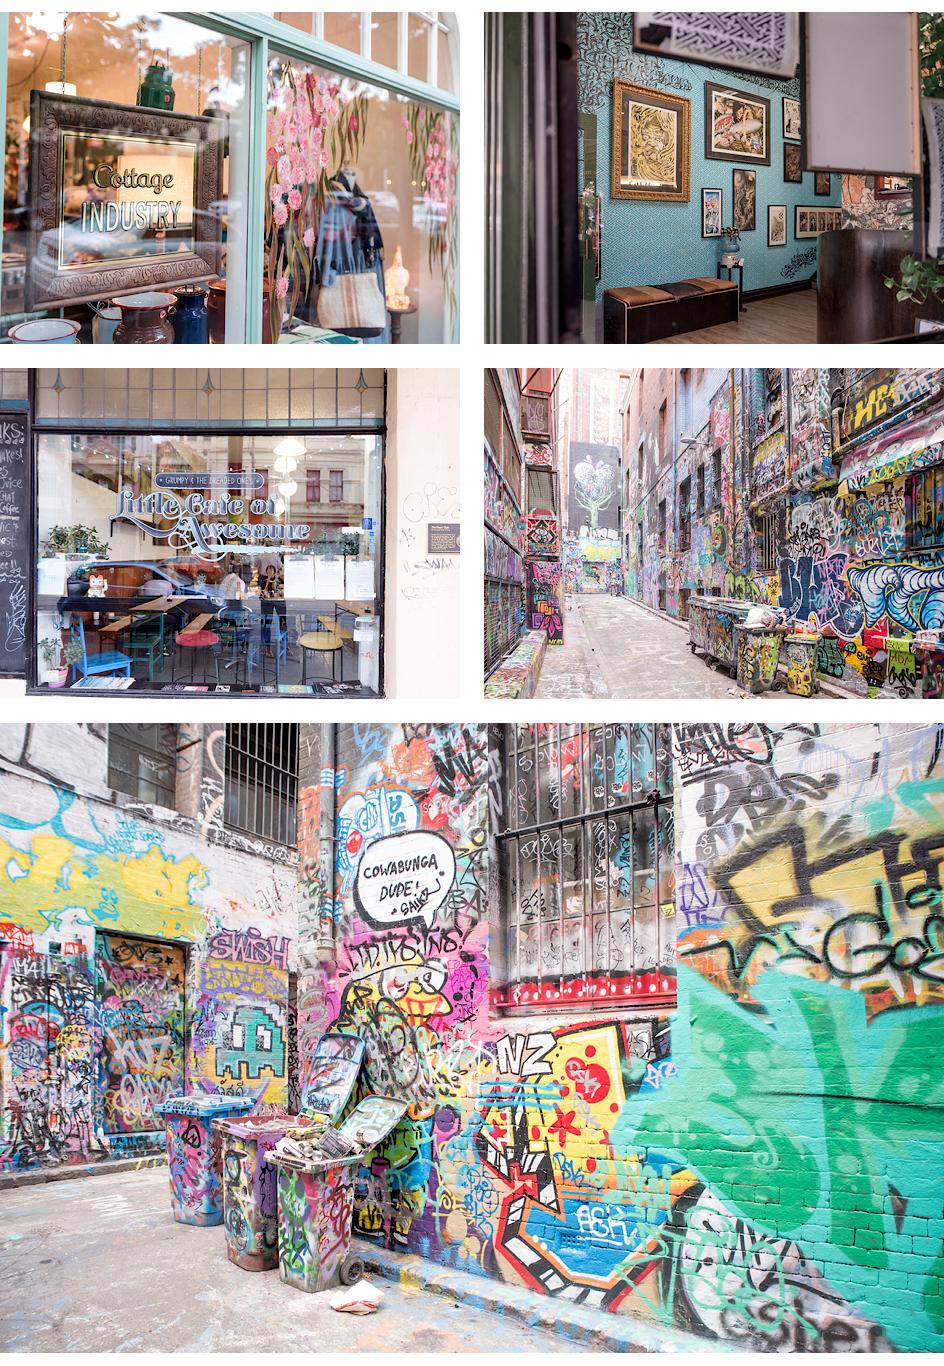 Verschiedene Läden rund um die Gertrude Street, Cottage Industry, Little Café of Awesome, Street Art in der Hooiserlane